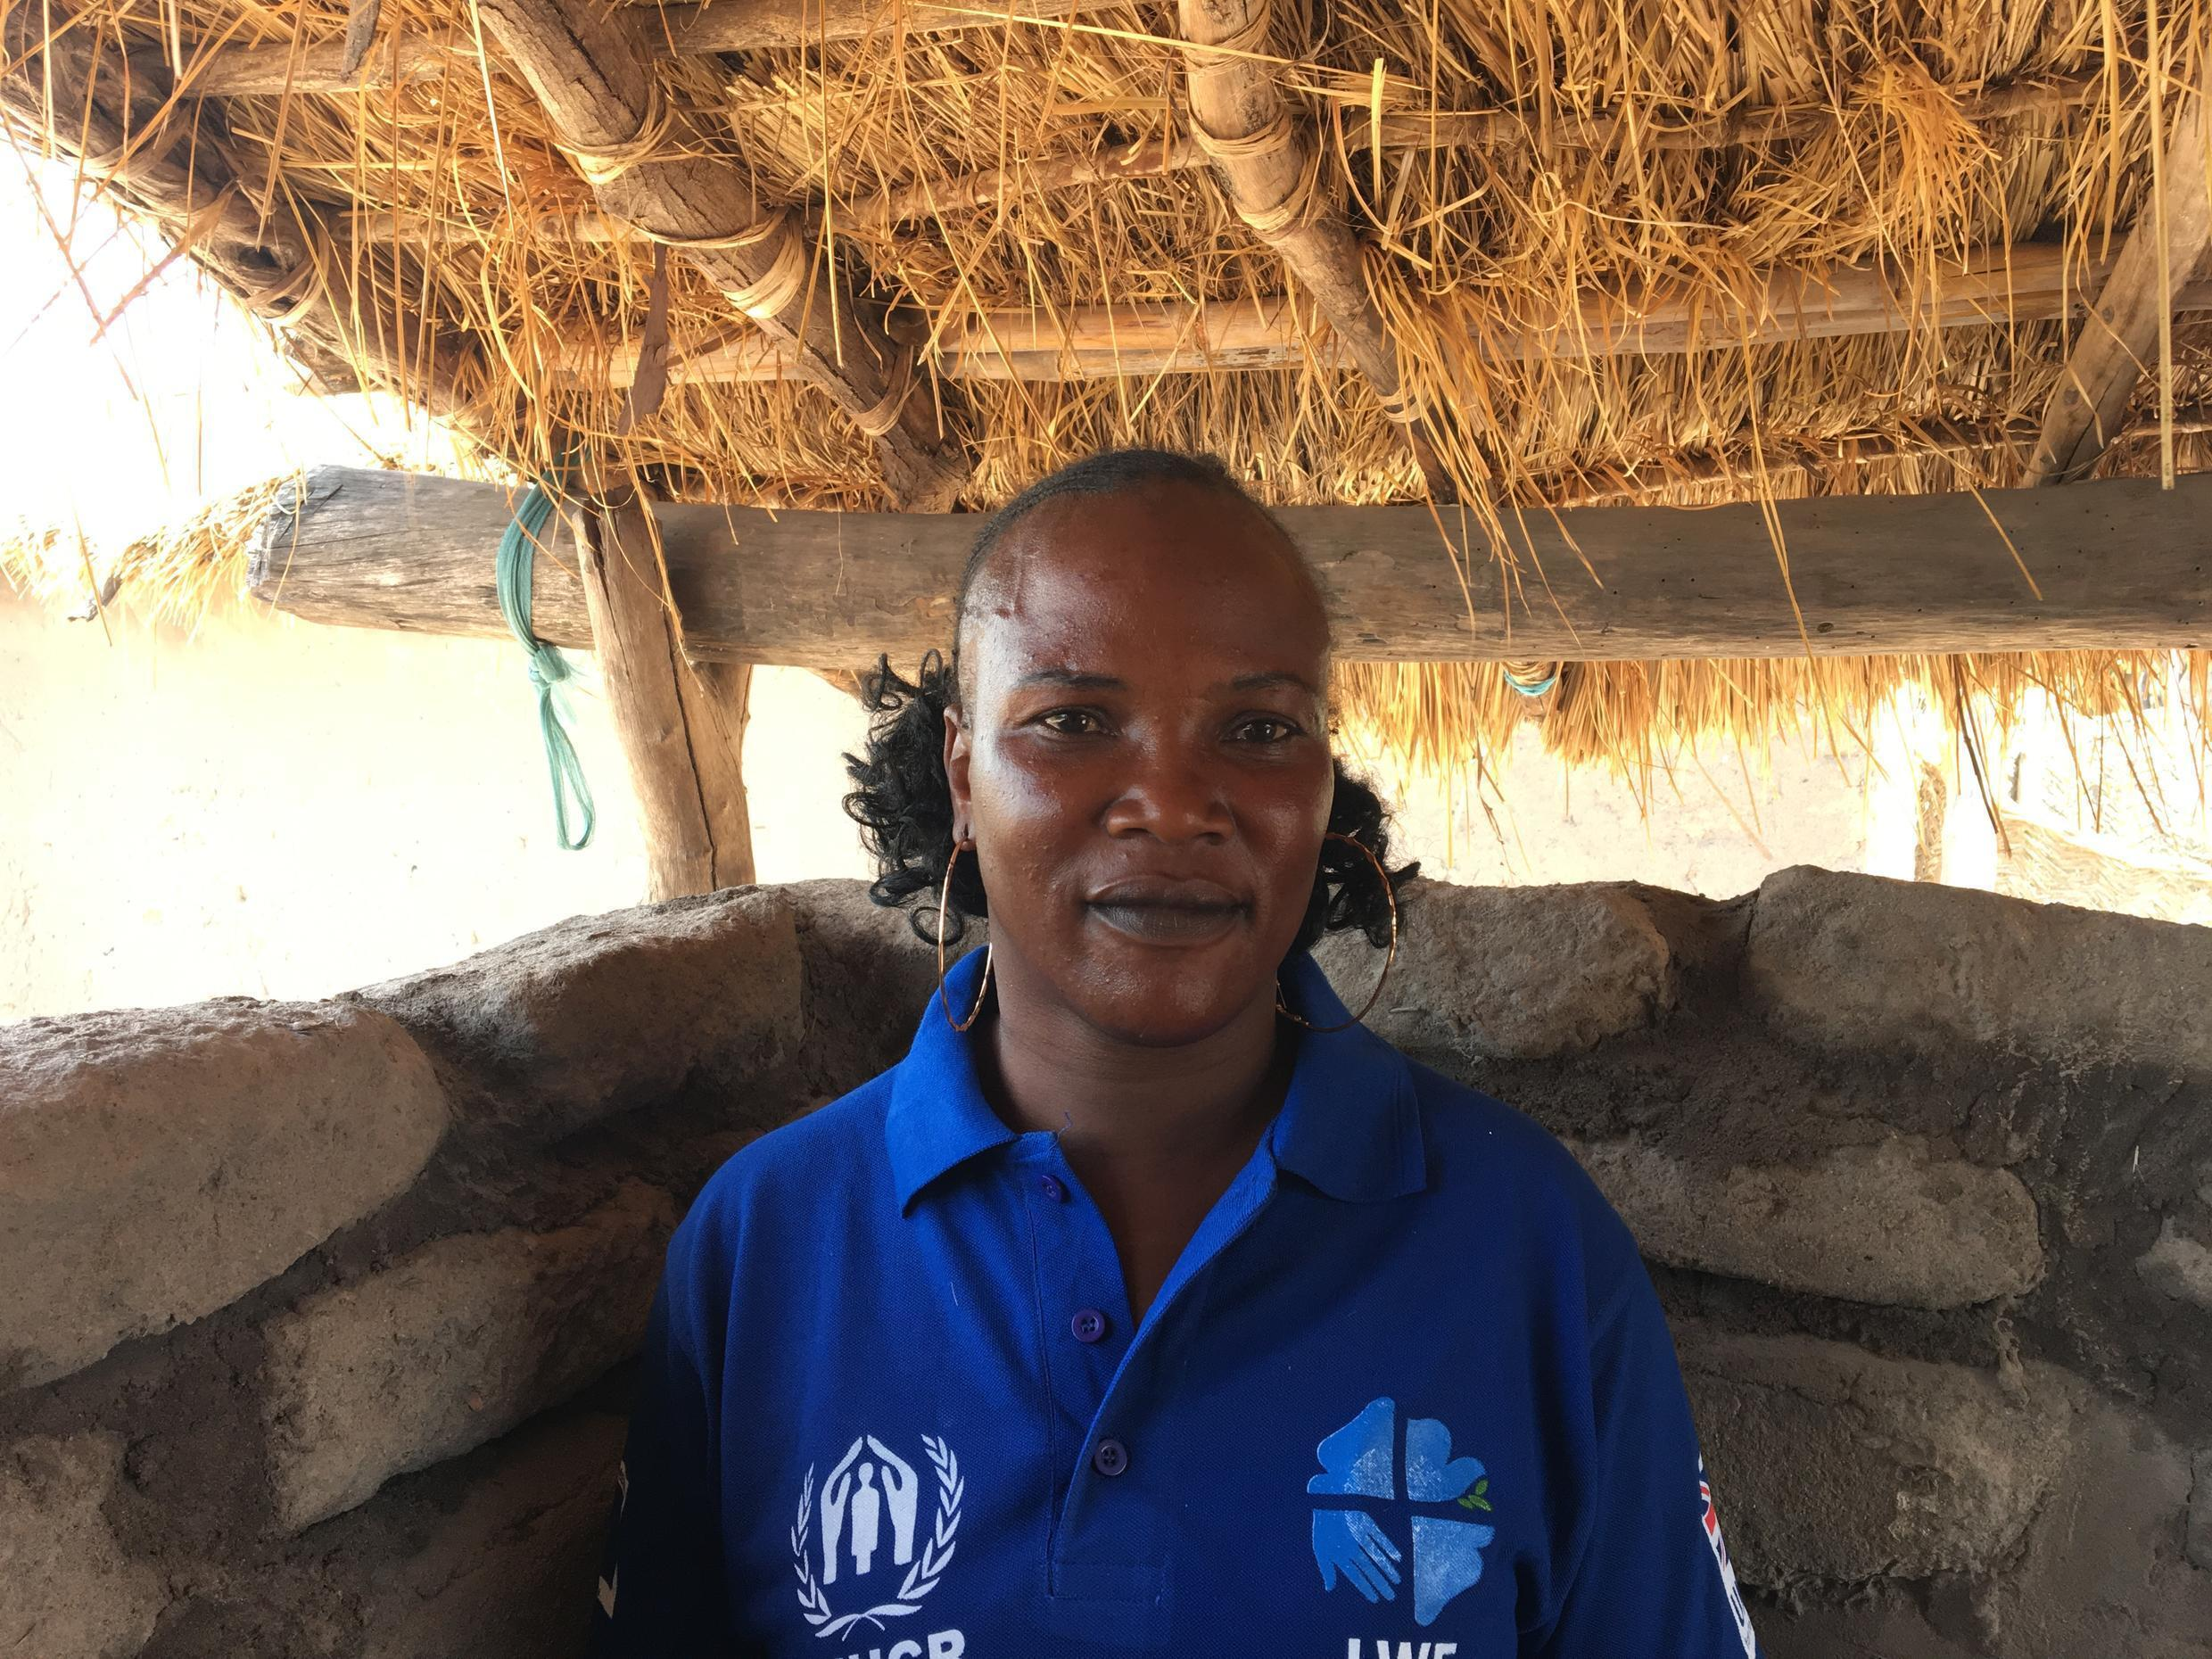 Justine Baydou, 31, CAR refugee and the women's representative in Damboko camp; takes care of her daughter, niece and 5 orphans